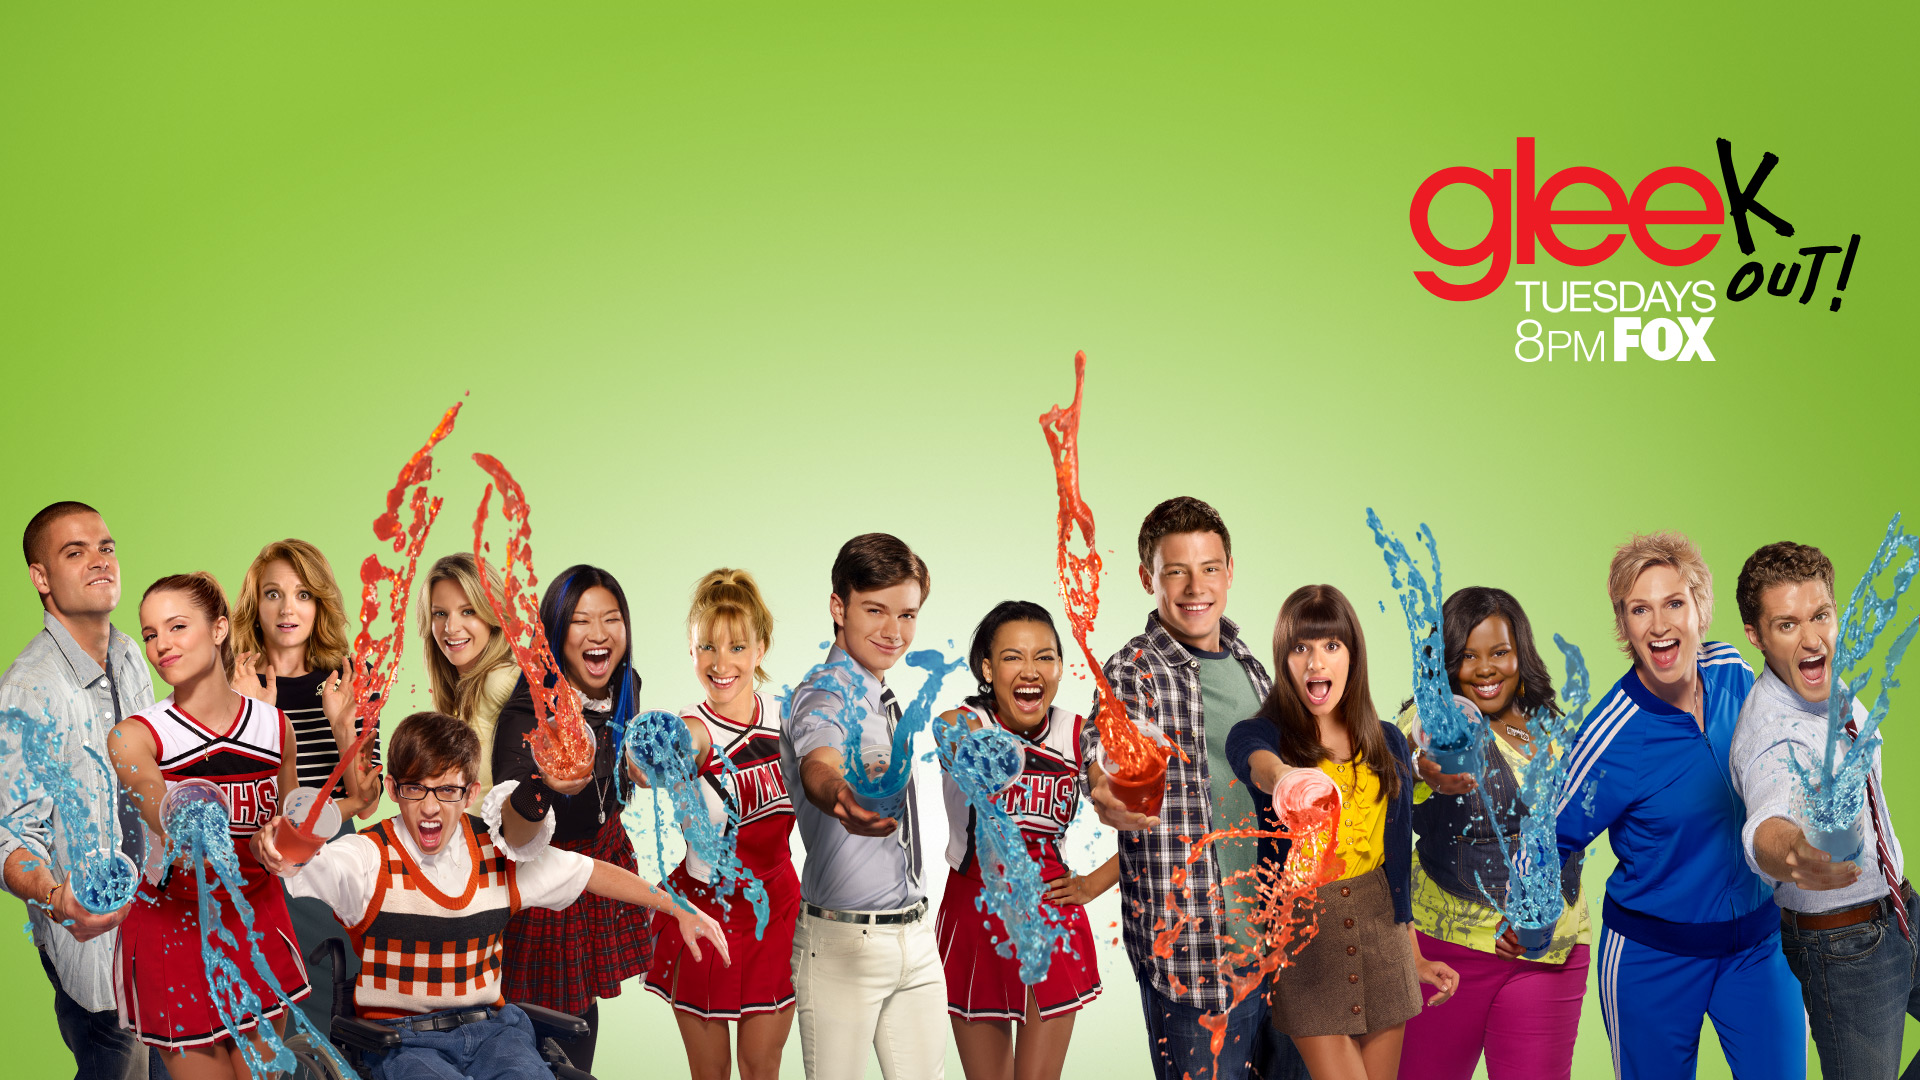 Glee wallpapers, TV Show, HQ Glee pictures | 4K Wallpapers 2019